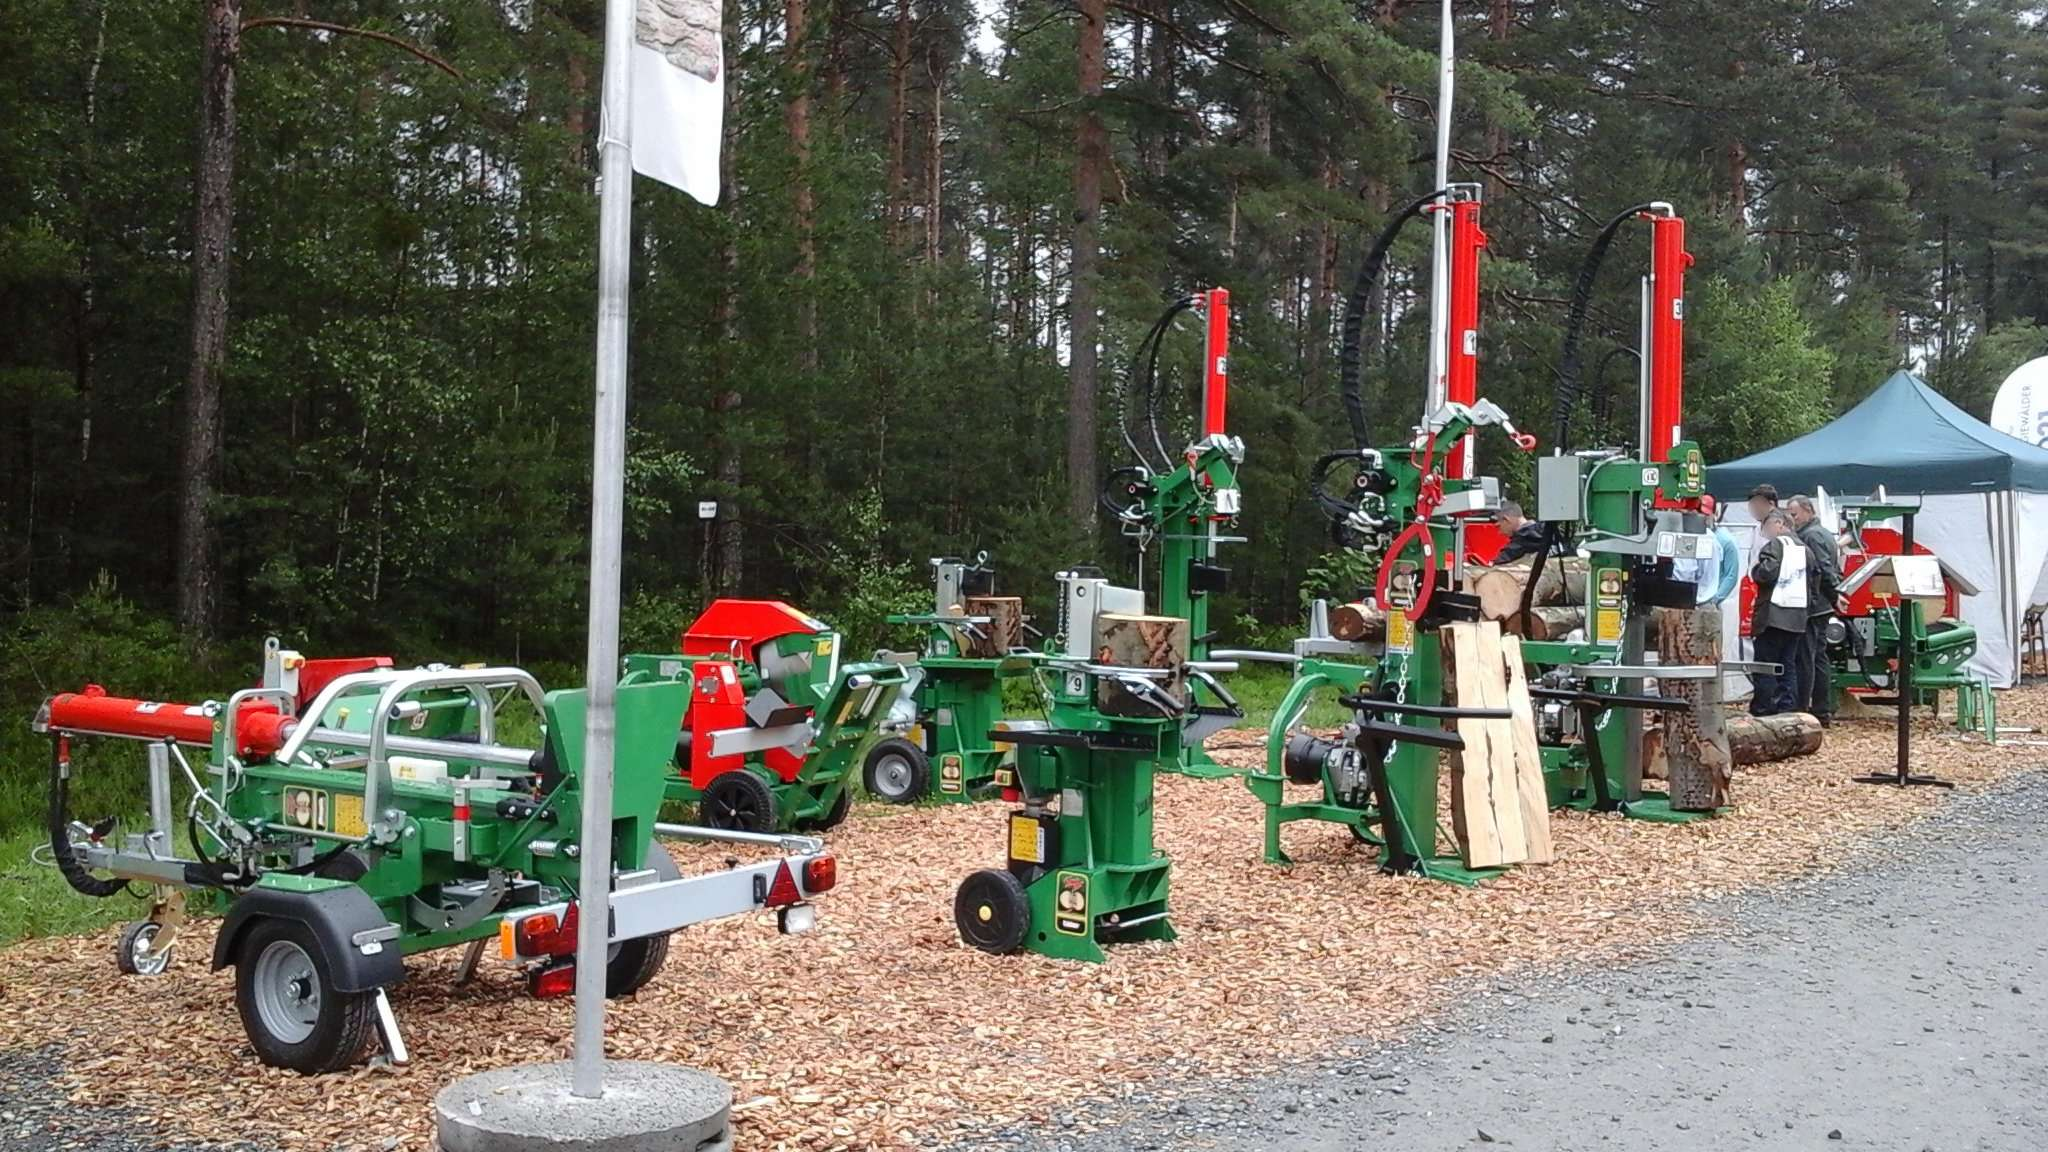 Joe Turner – Service to Agriculture and Forestry